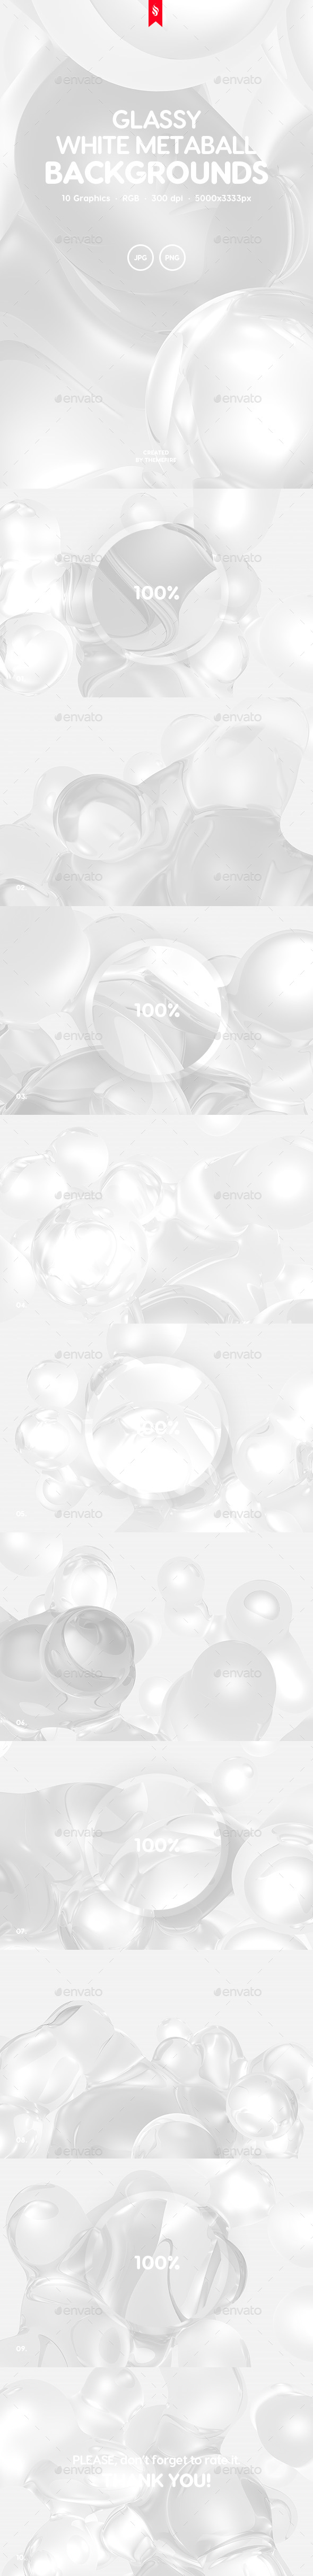 Glassy - White Metaball Backgrounds